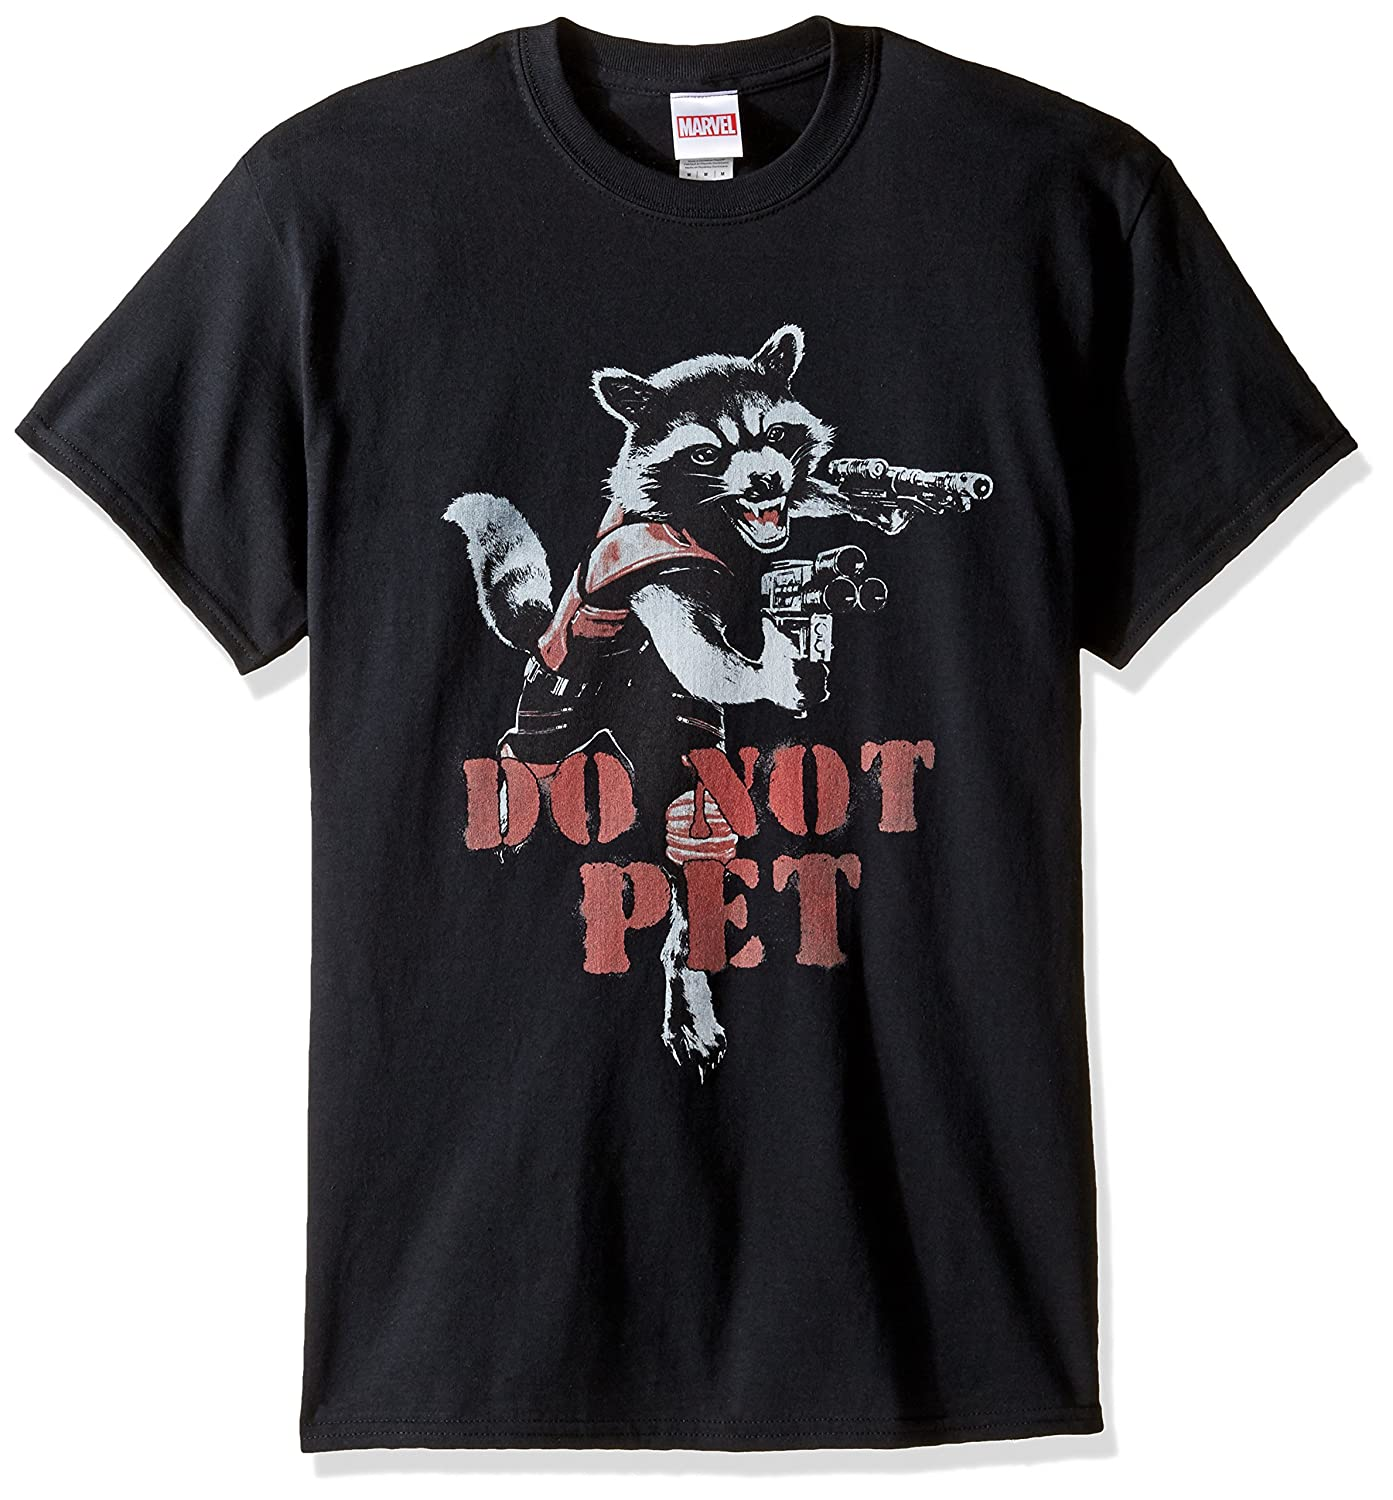 Marvel Mens Do Not Pet Rocket Raccoon T-Shirt G1SN016